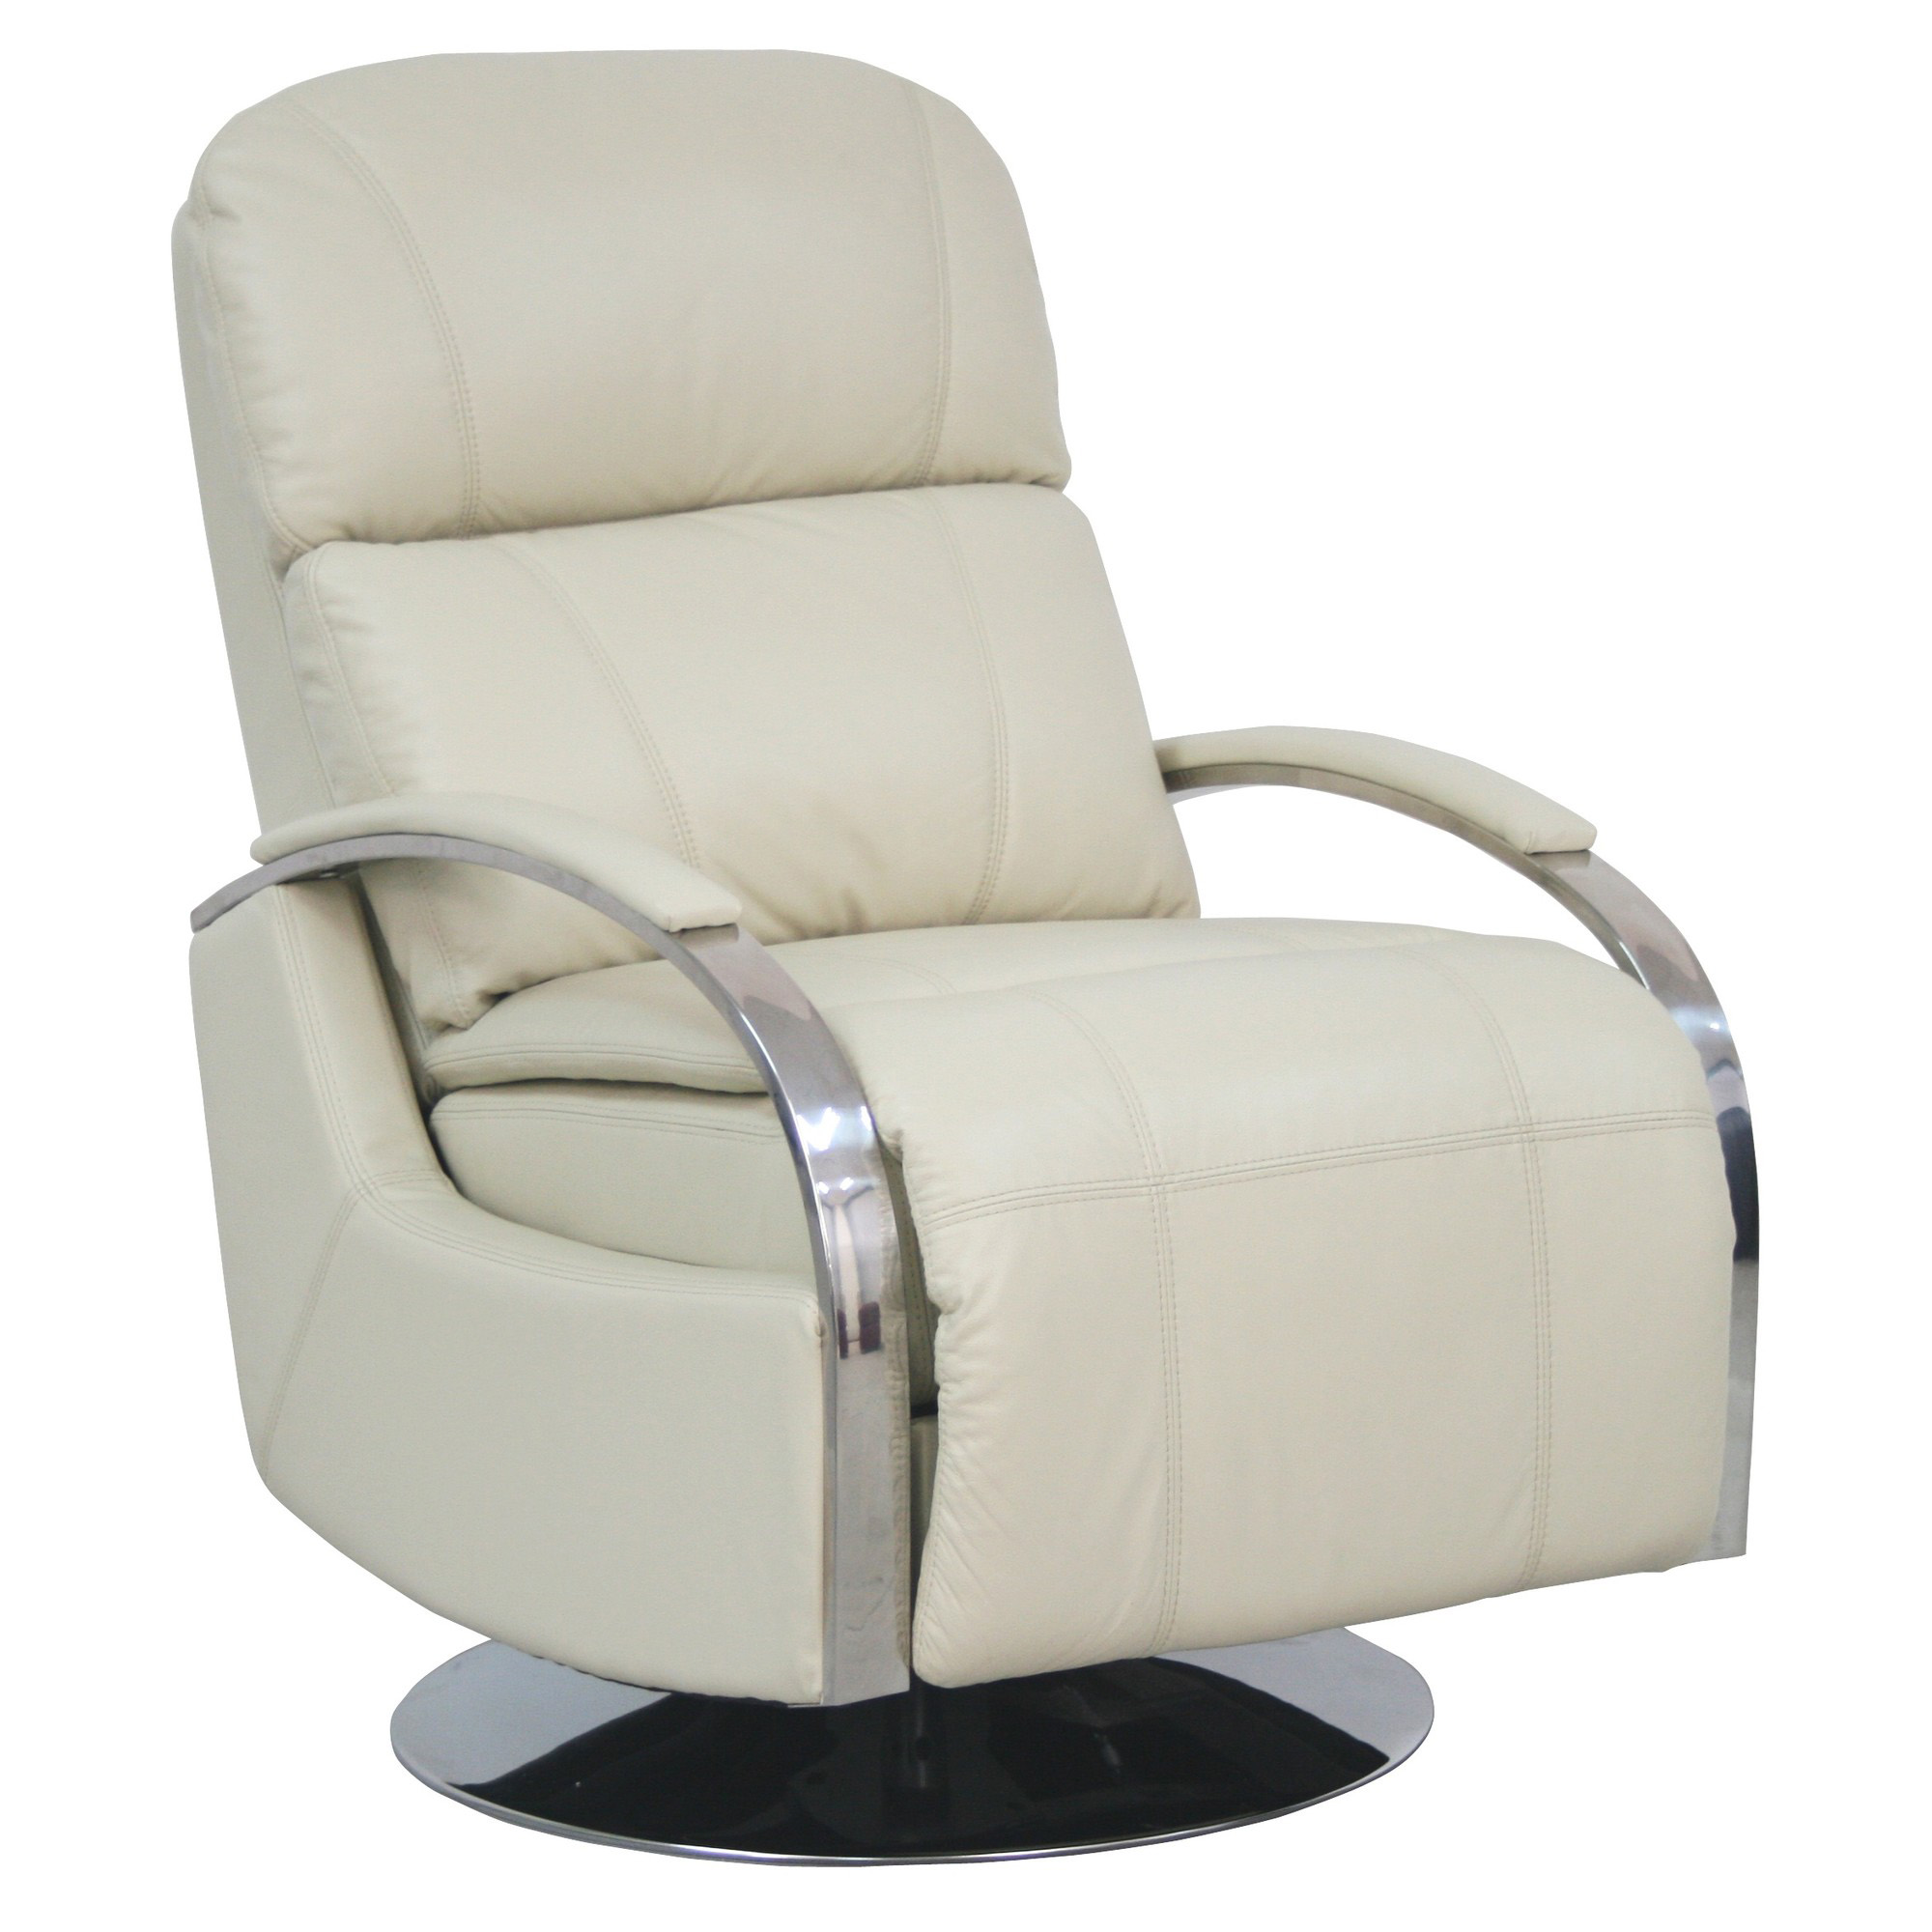 Chair Leather Reclining Swivel Barcalounger Regal Ii Leather Recliner Chair Leather Recliner